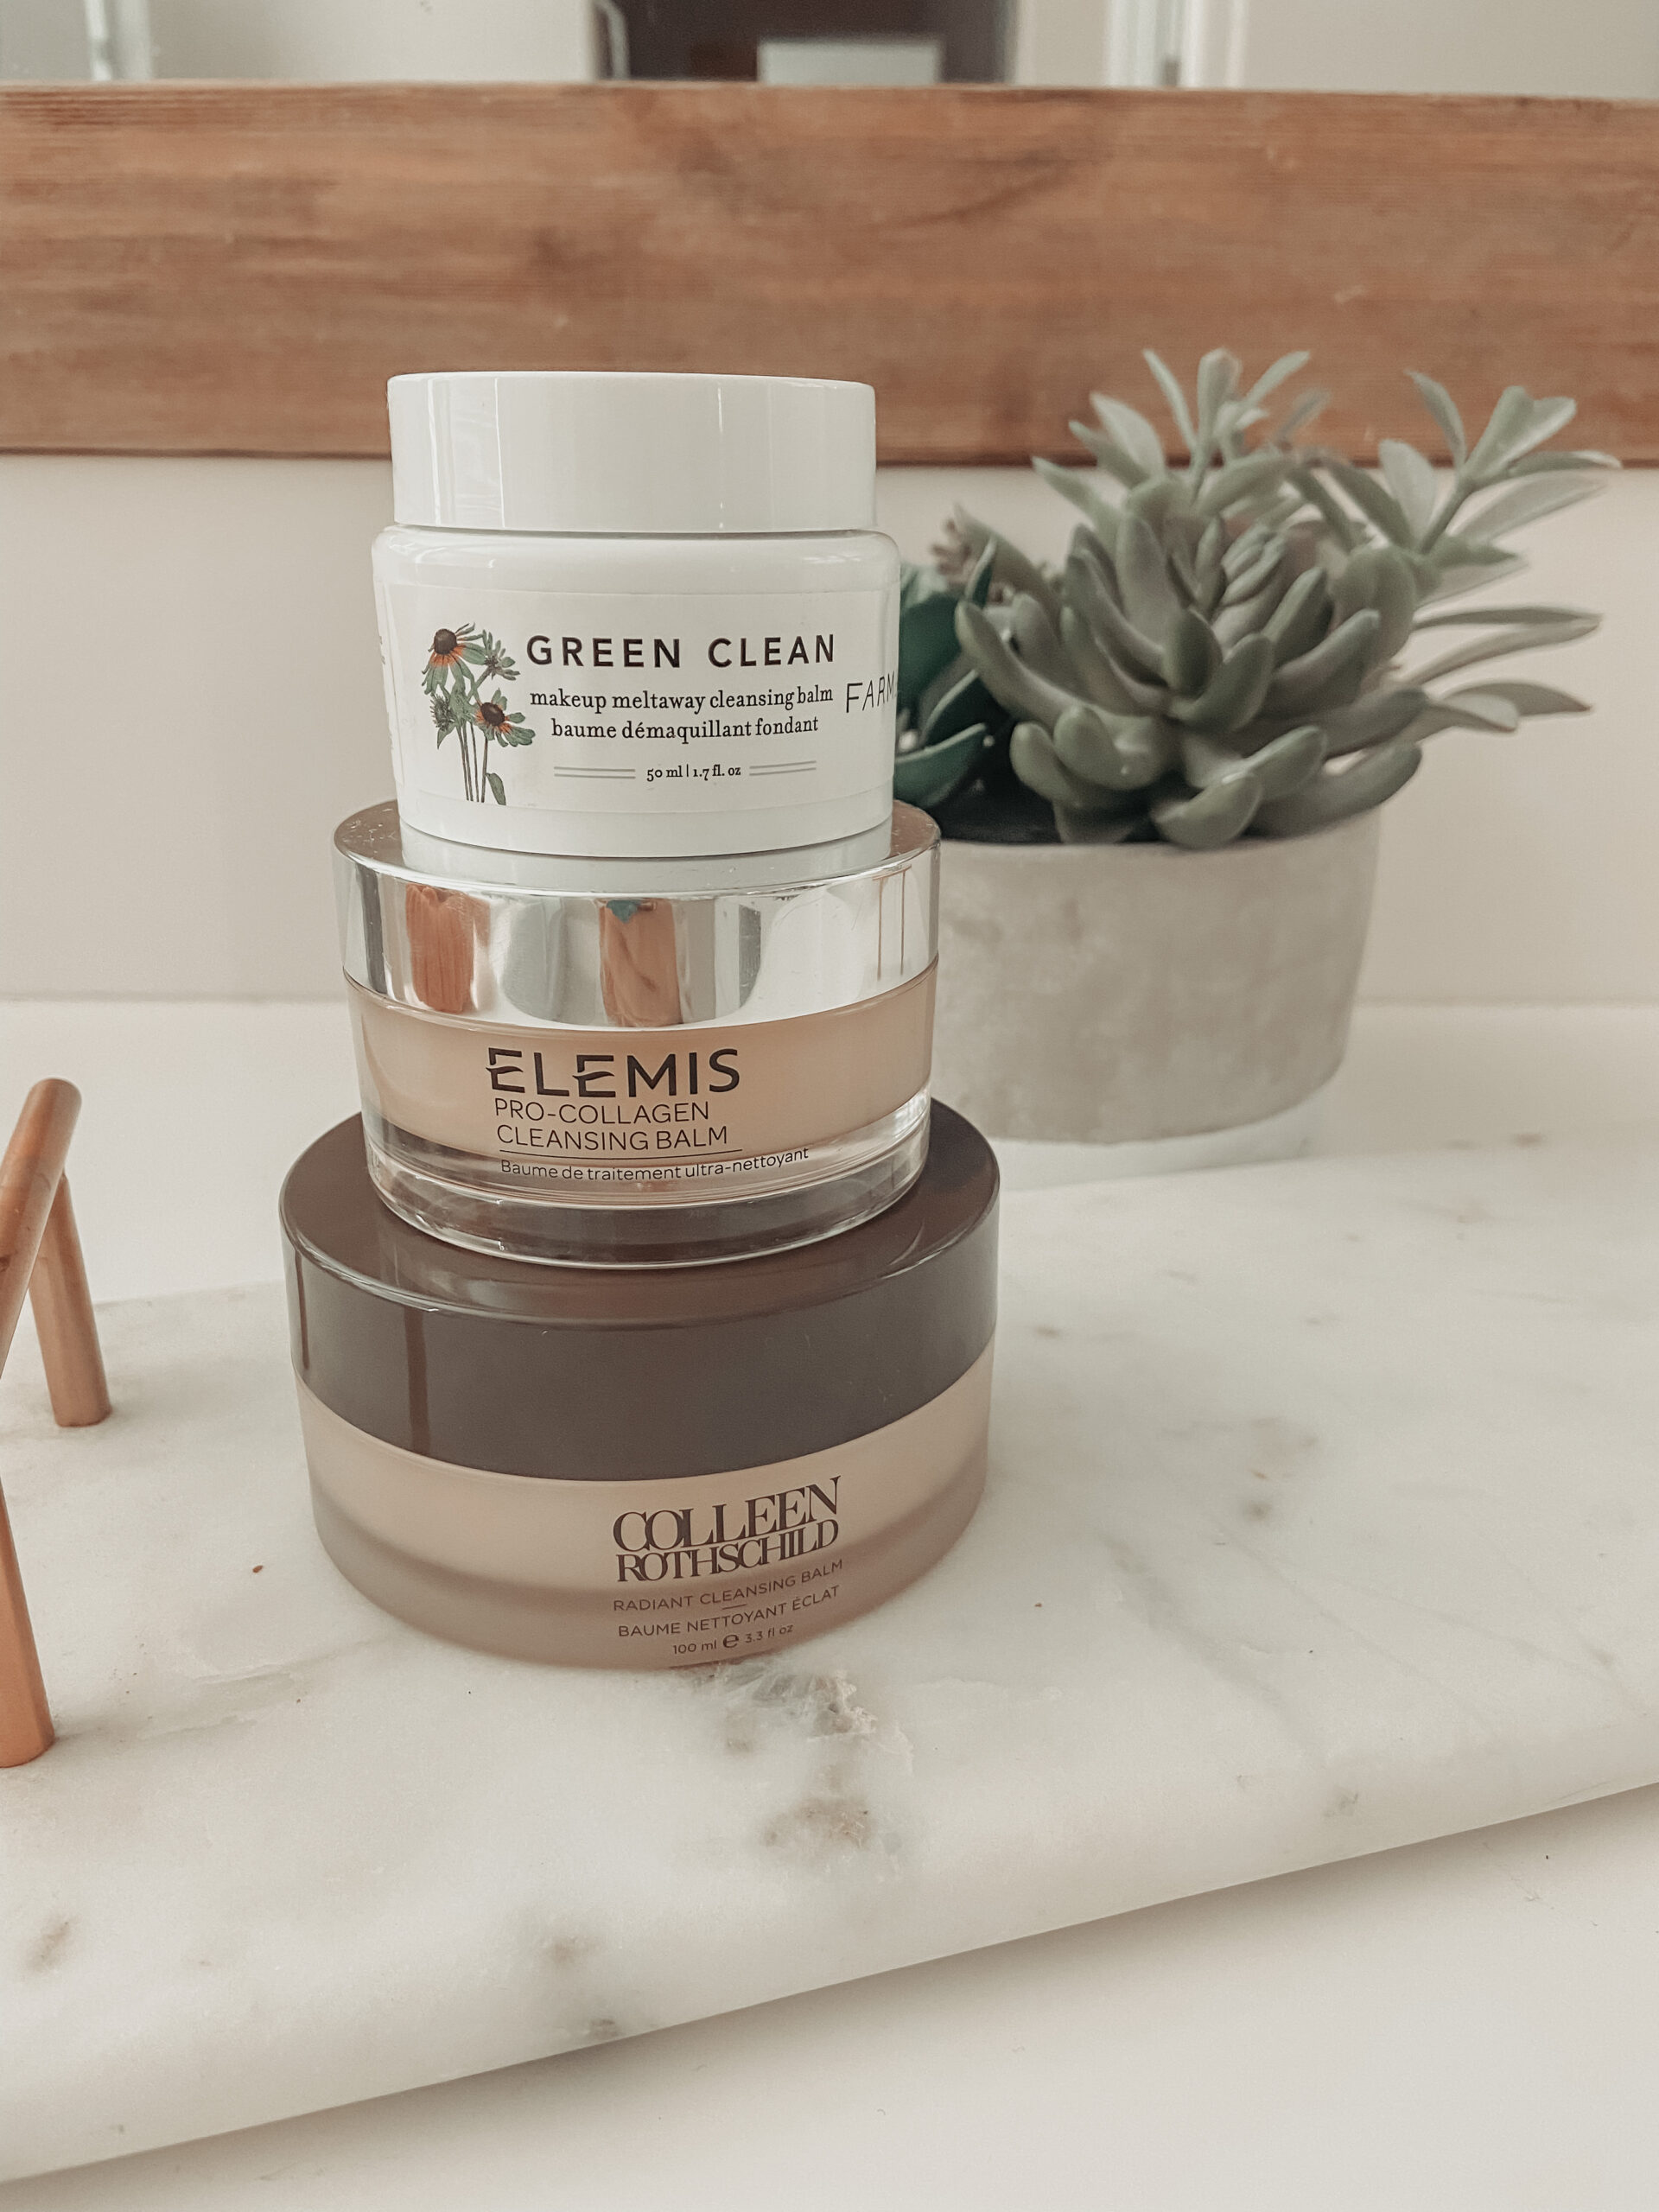 CLEANSING BALM- WHY YOU NEED TO ADD IT TO YOUR SKINCARE ROUTINE- Jaclyn De Leon Style + sharing why I love my cleansing balm and why it's a must have in your skincare routine. Also sharing my top 3 favorite cleansing balm products